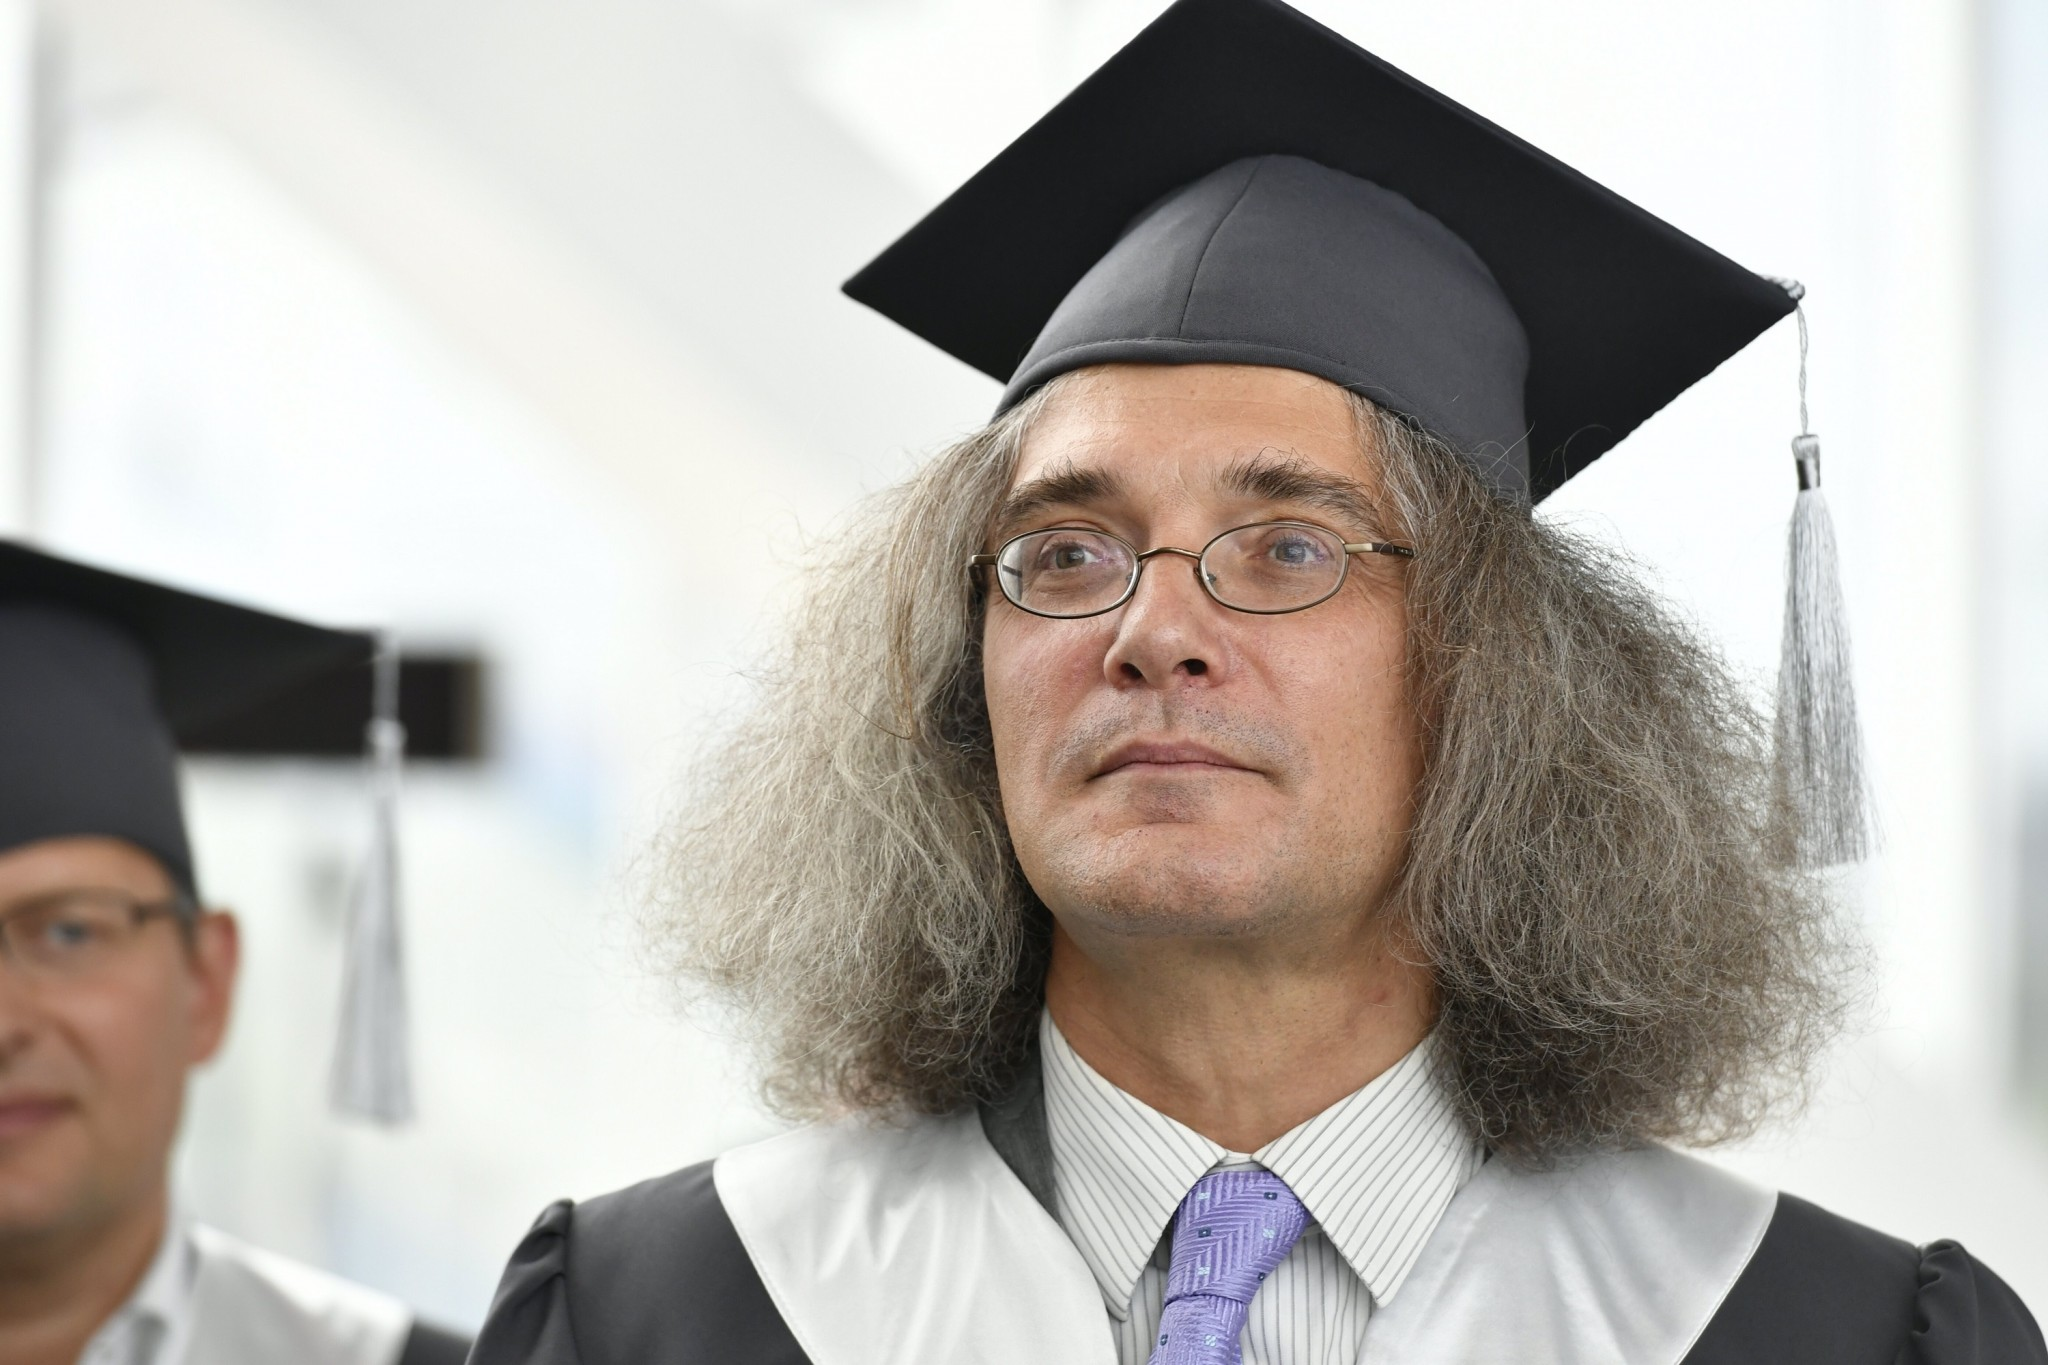 Professor Severinov pictured during the graduation ceremony. Photo: Skoltech